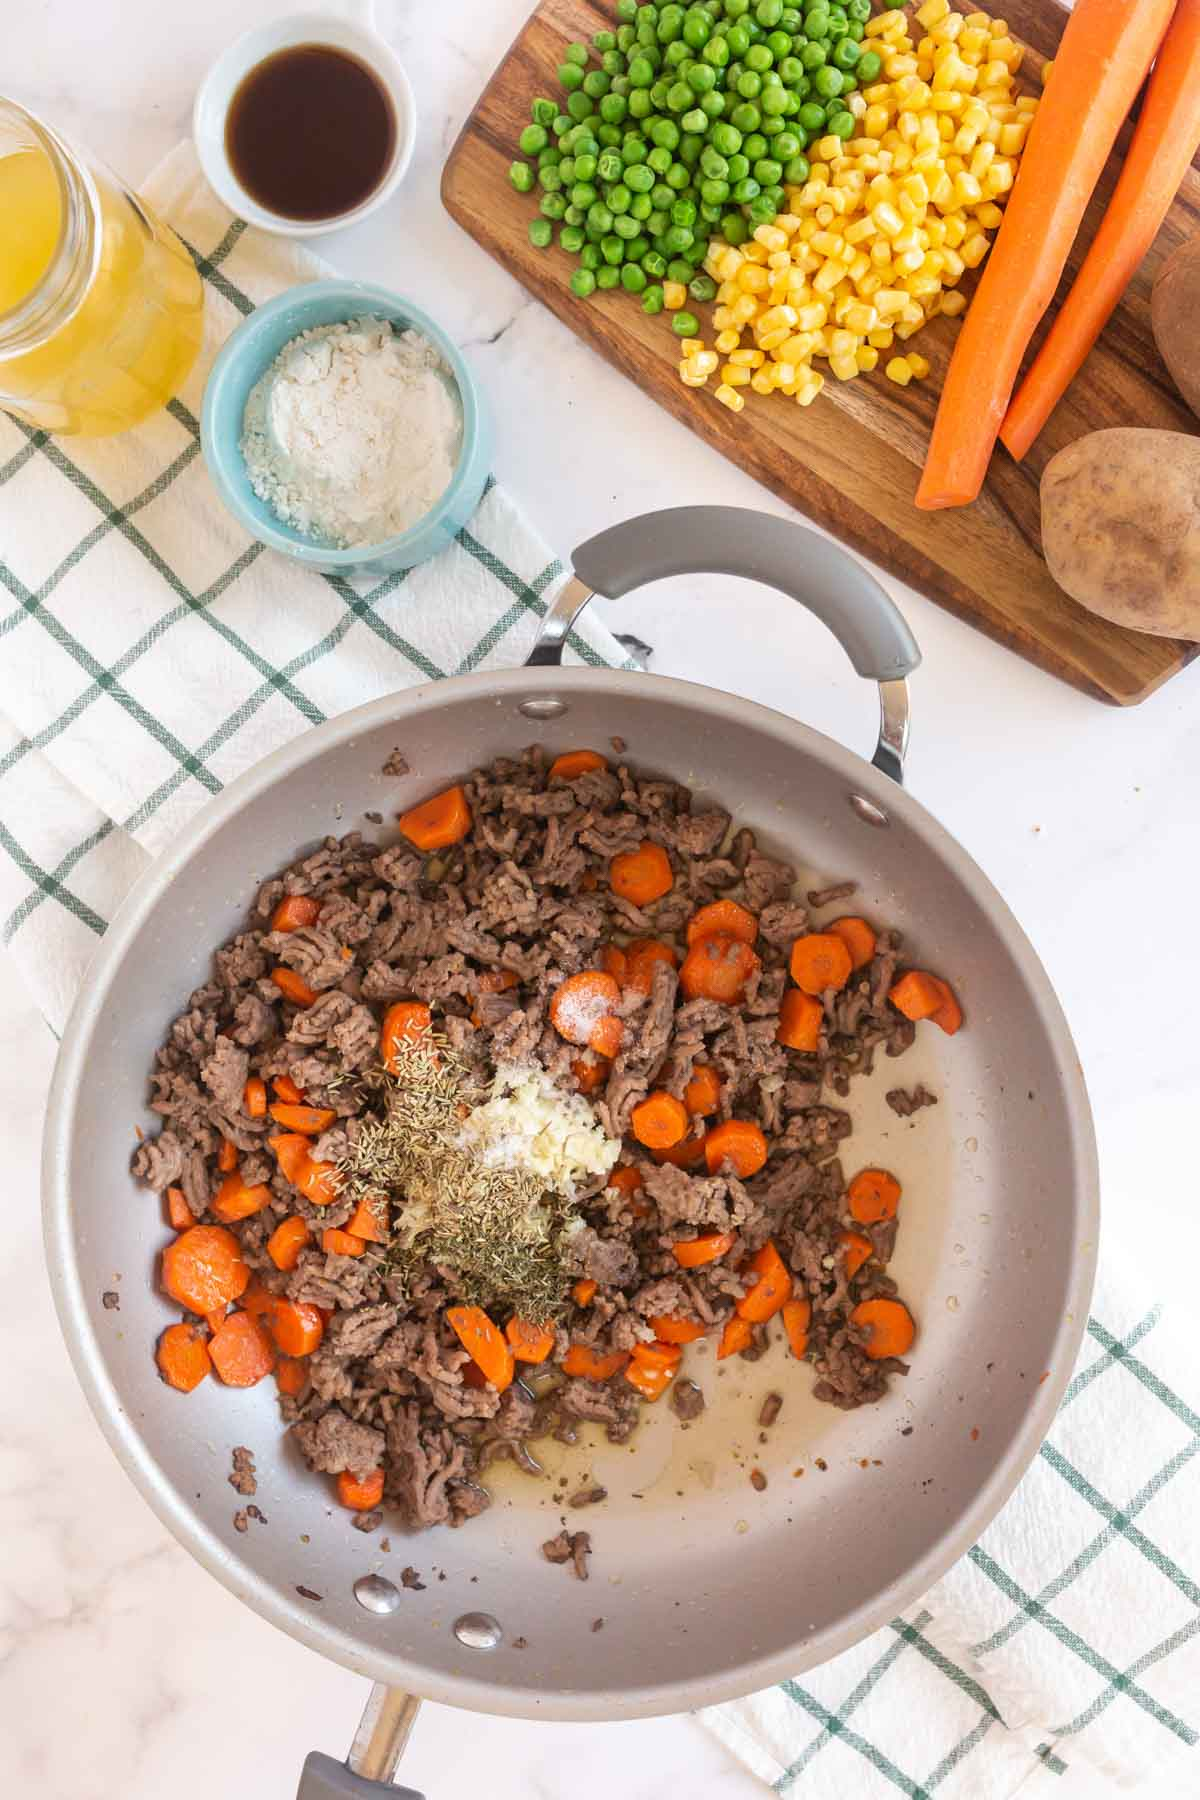 Spices, ground beef, and carrot in a metal pan